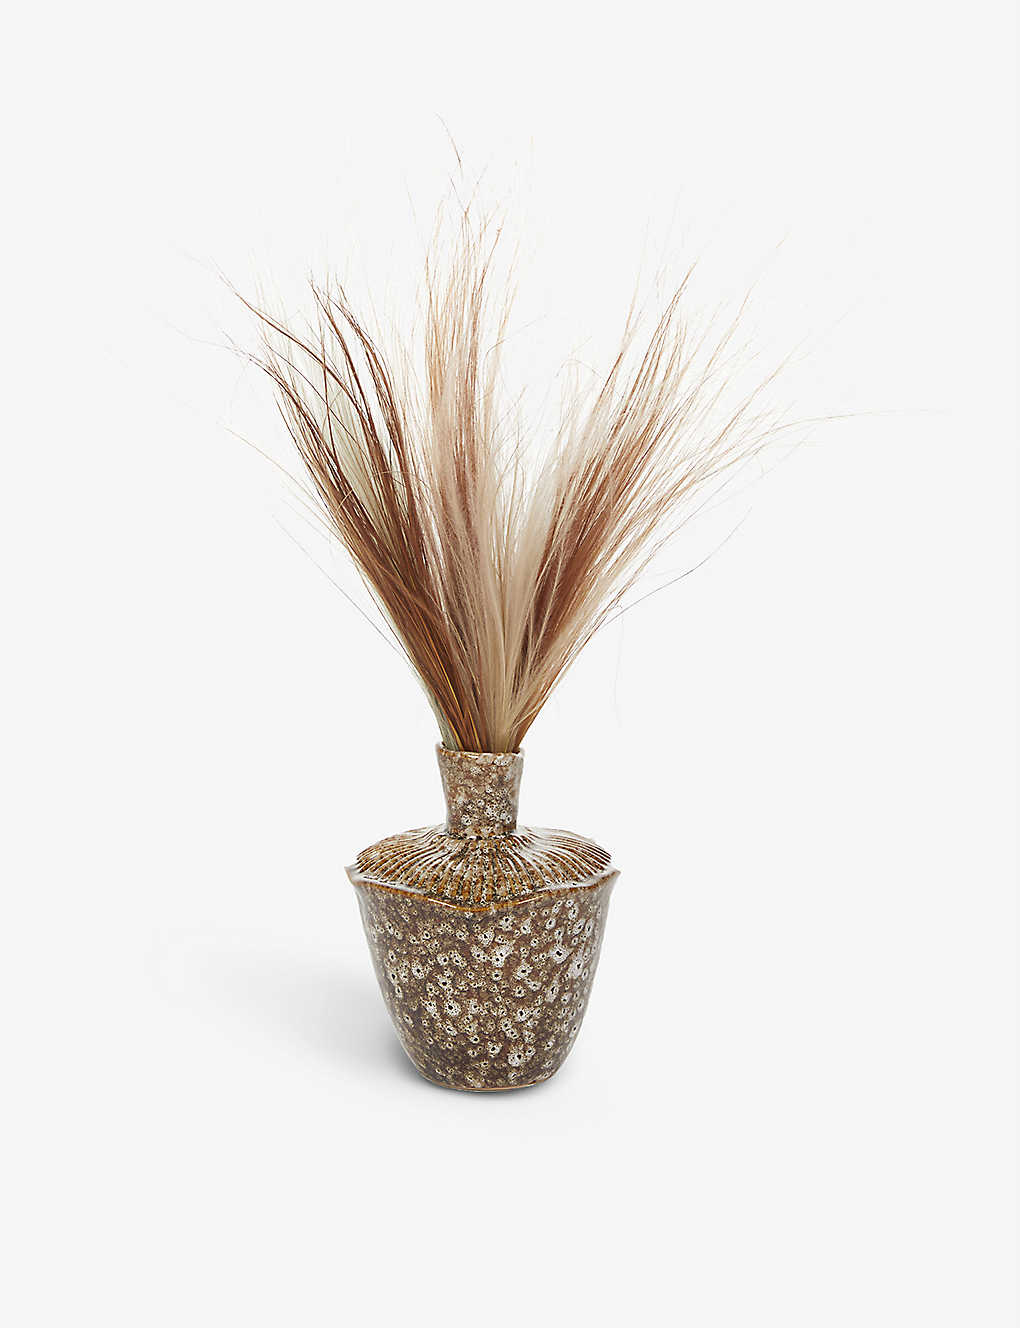 YOUR LONDON FLORIST: Exclusive Stipa Grass dried flowers with vase